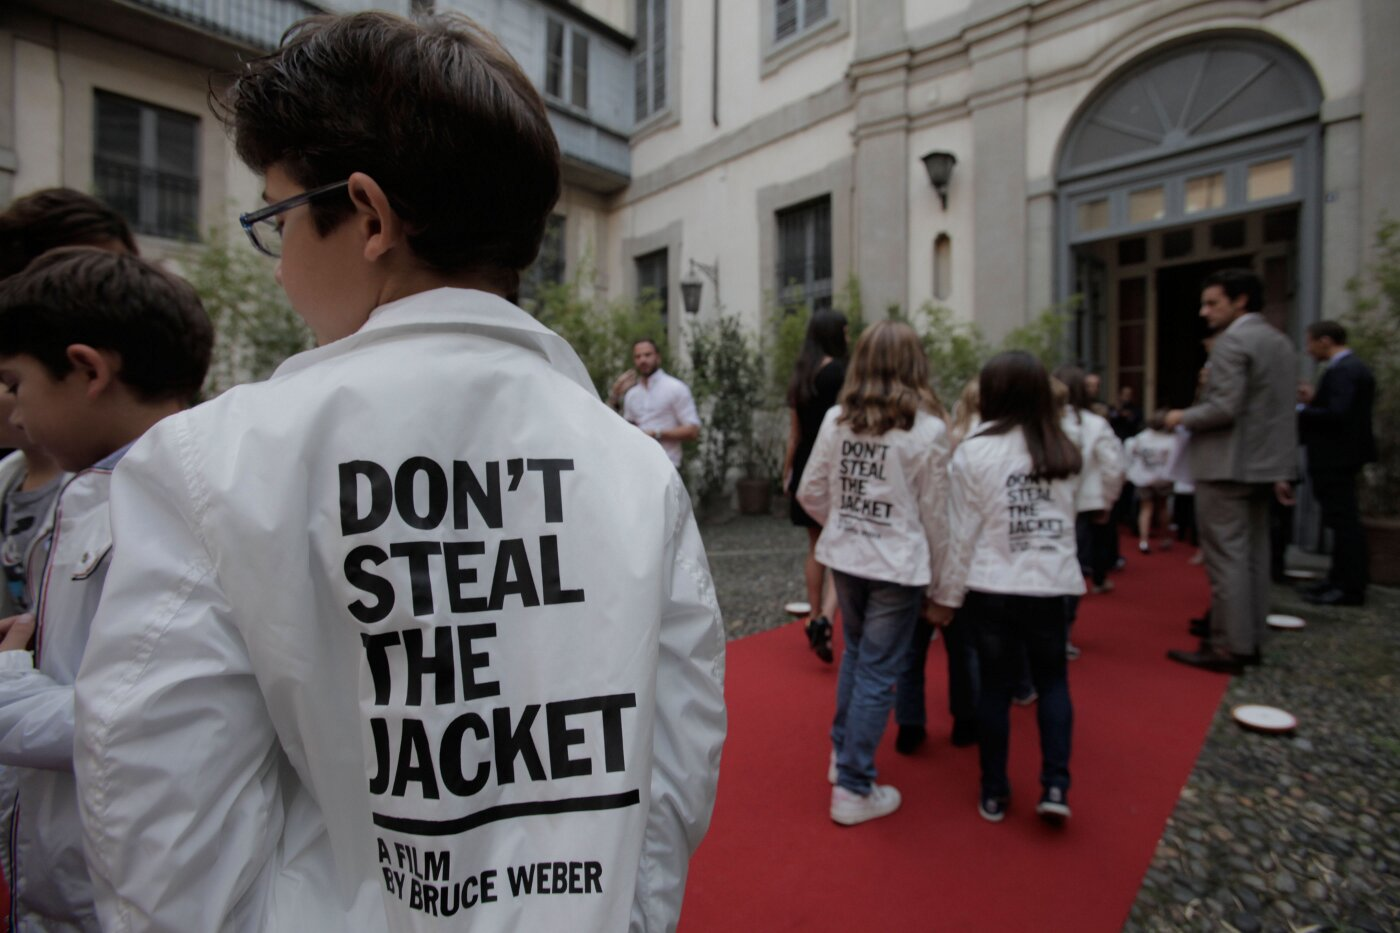 DON'T STEAL THE JACKET BY BRUCE WEBER